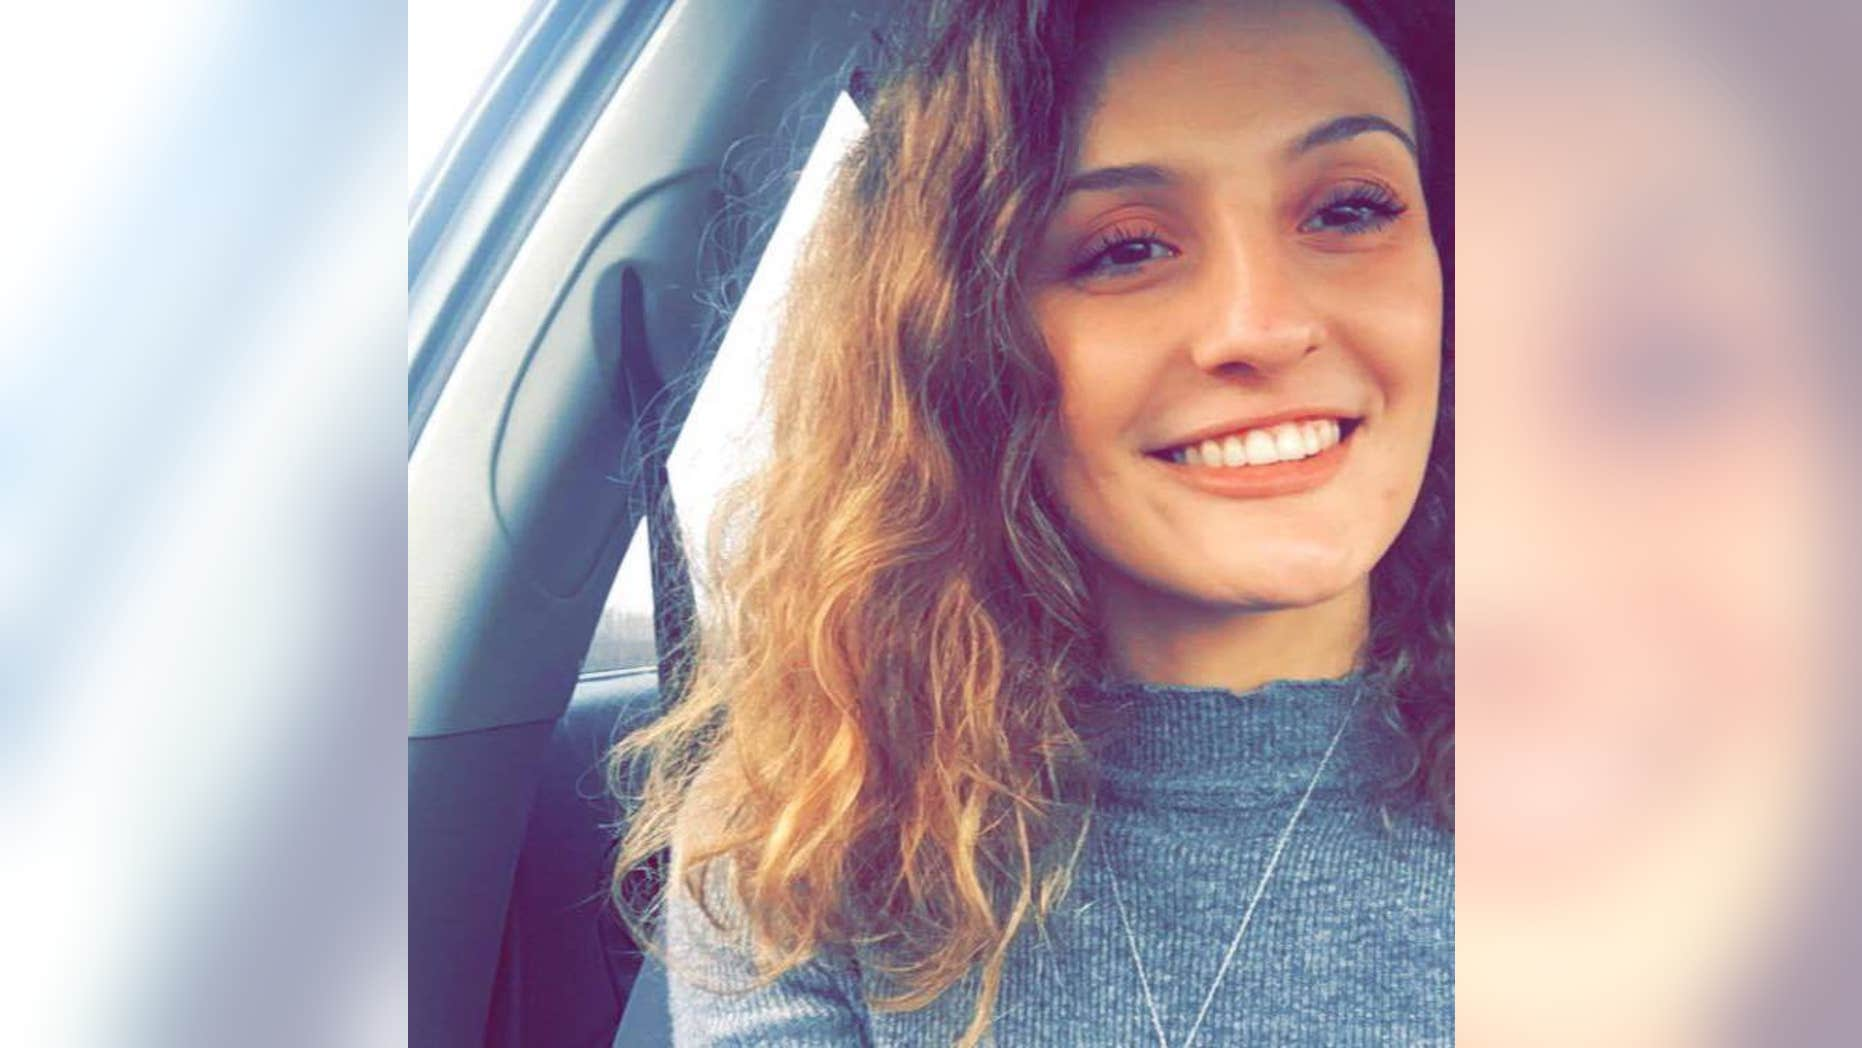 Brooke Naylor was found dead Friday nearly a week after she was reported missing.